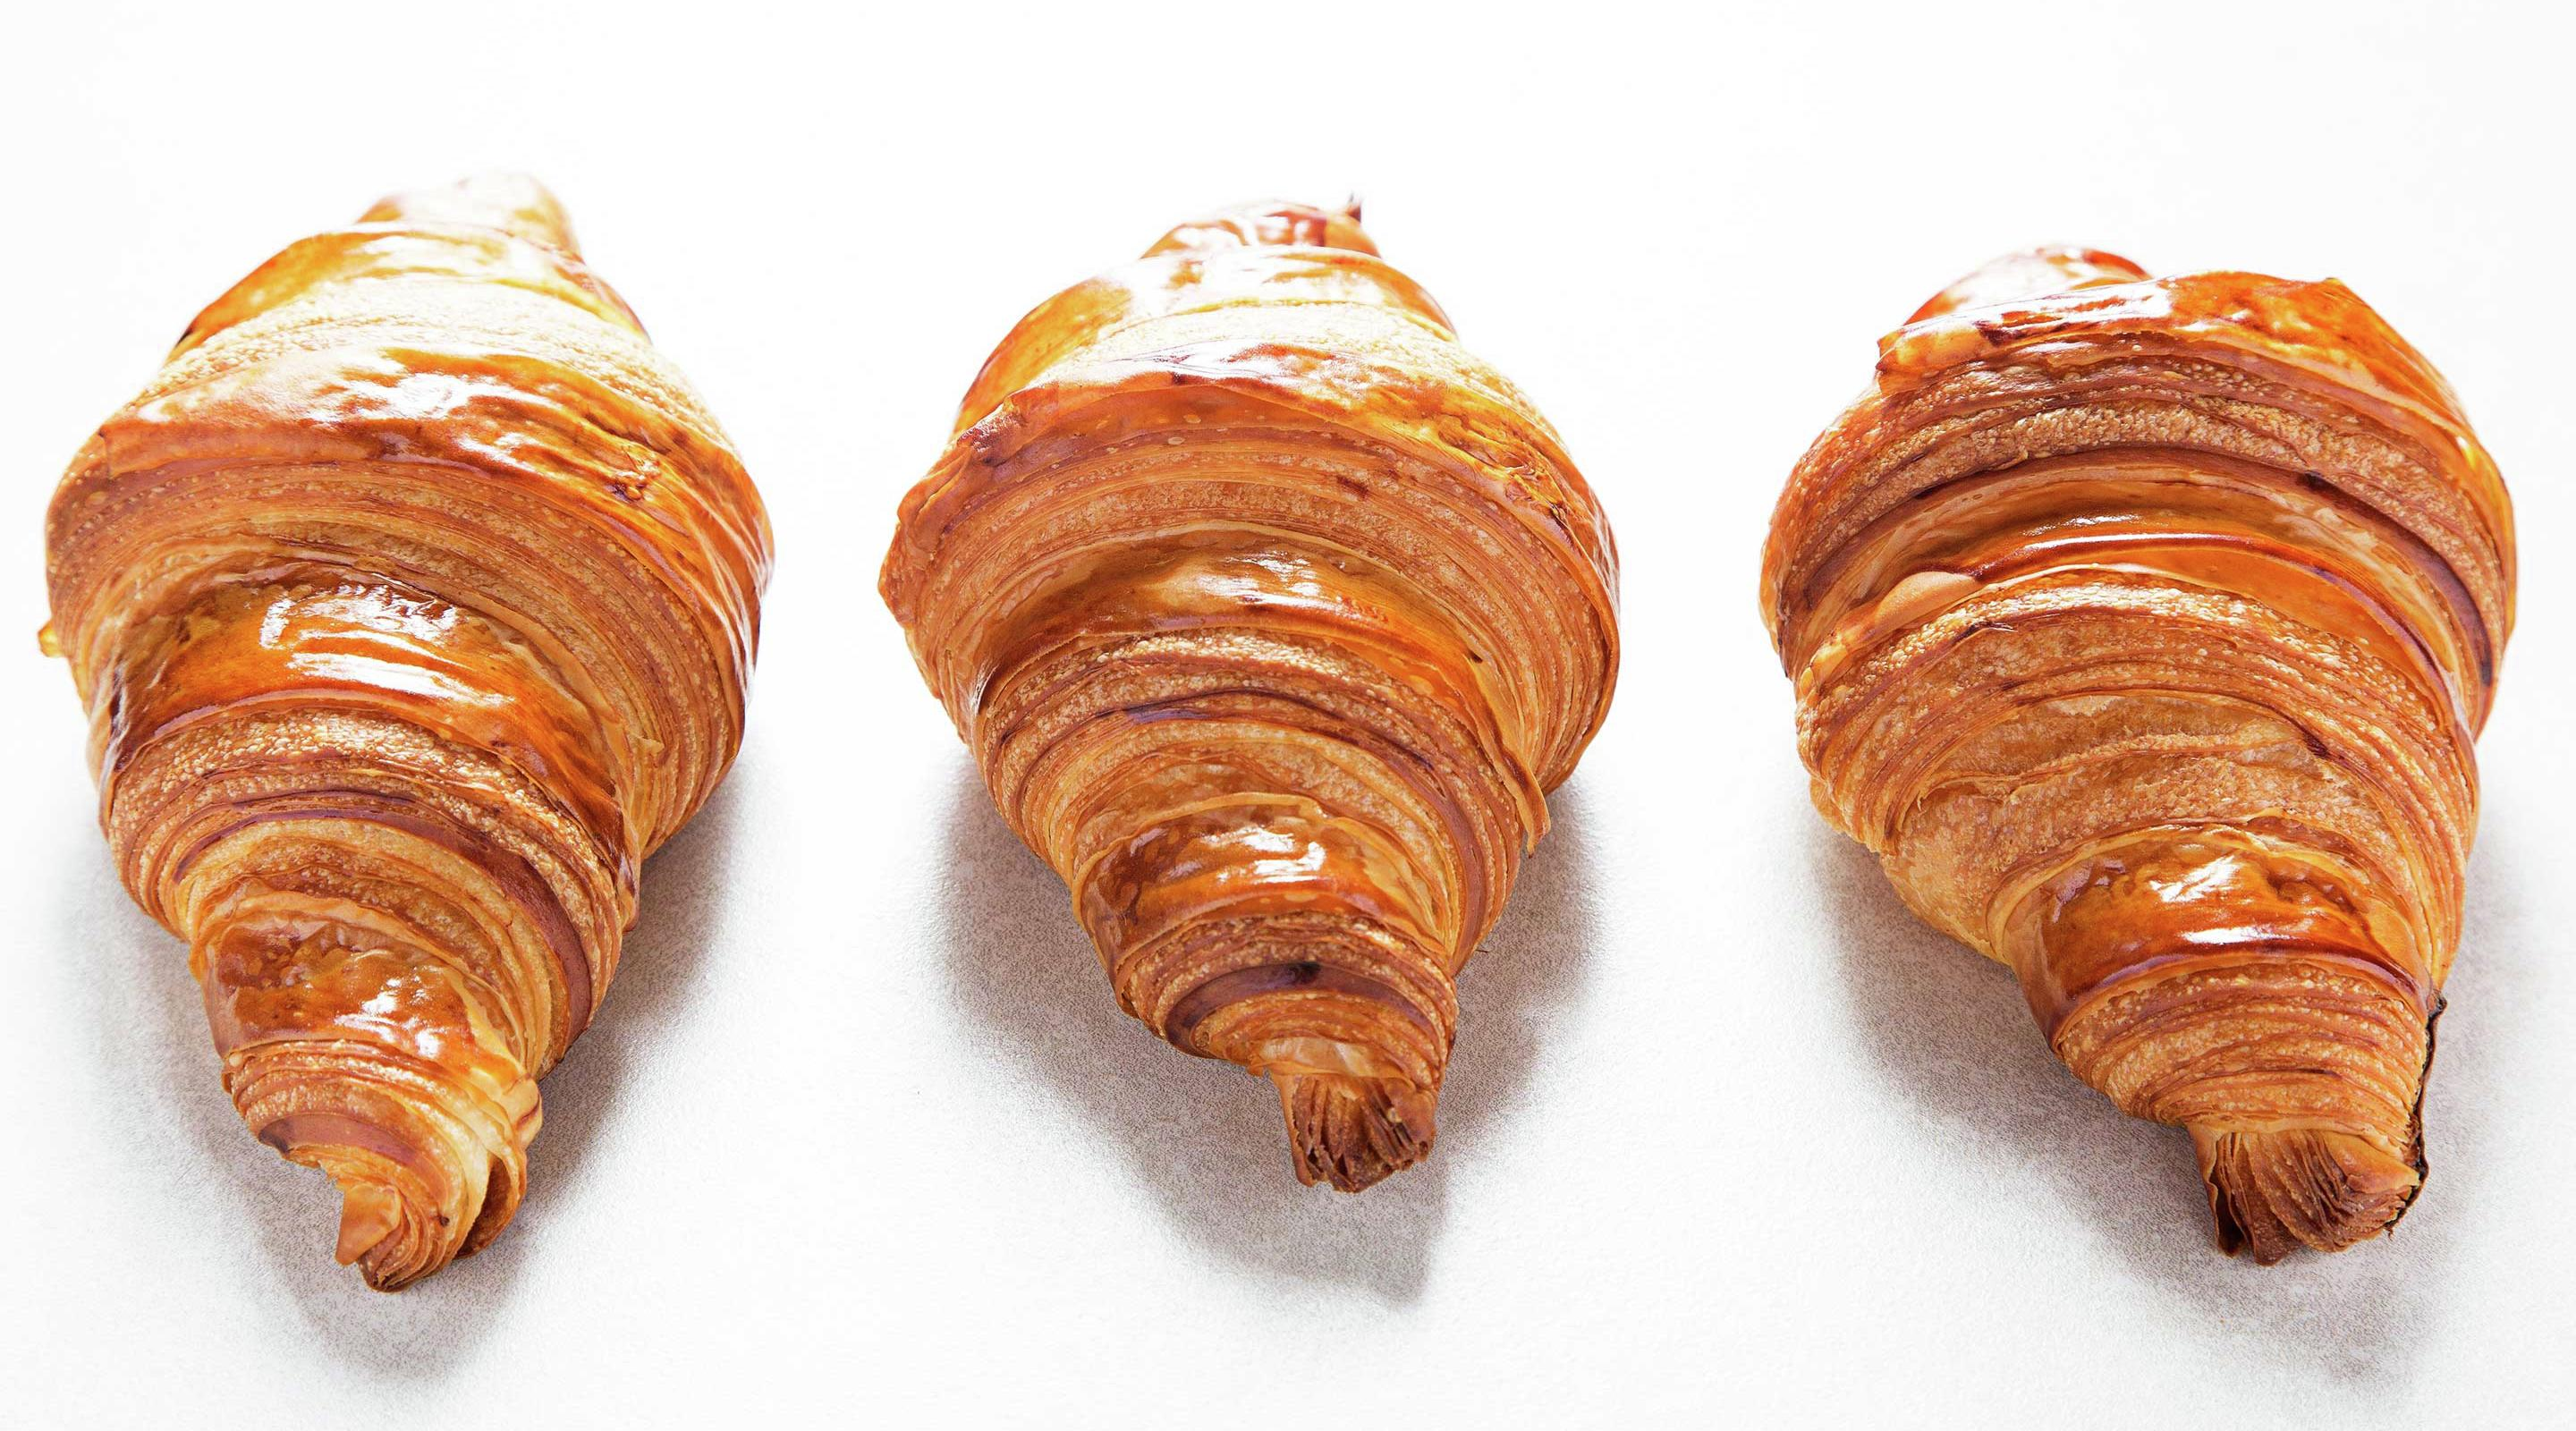 Try the croissants at Bellagio Patisserie